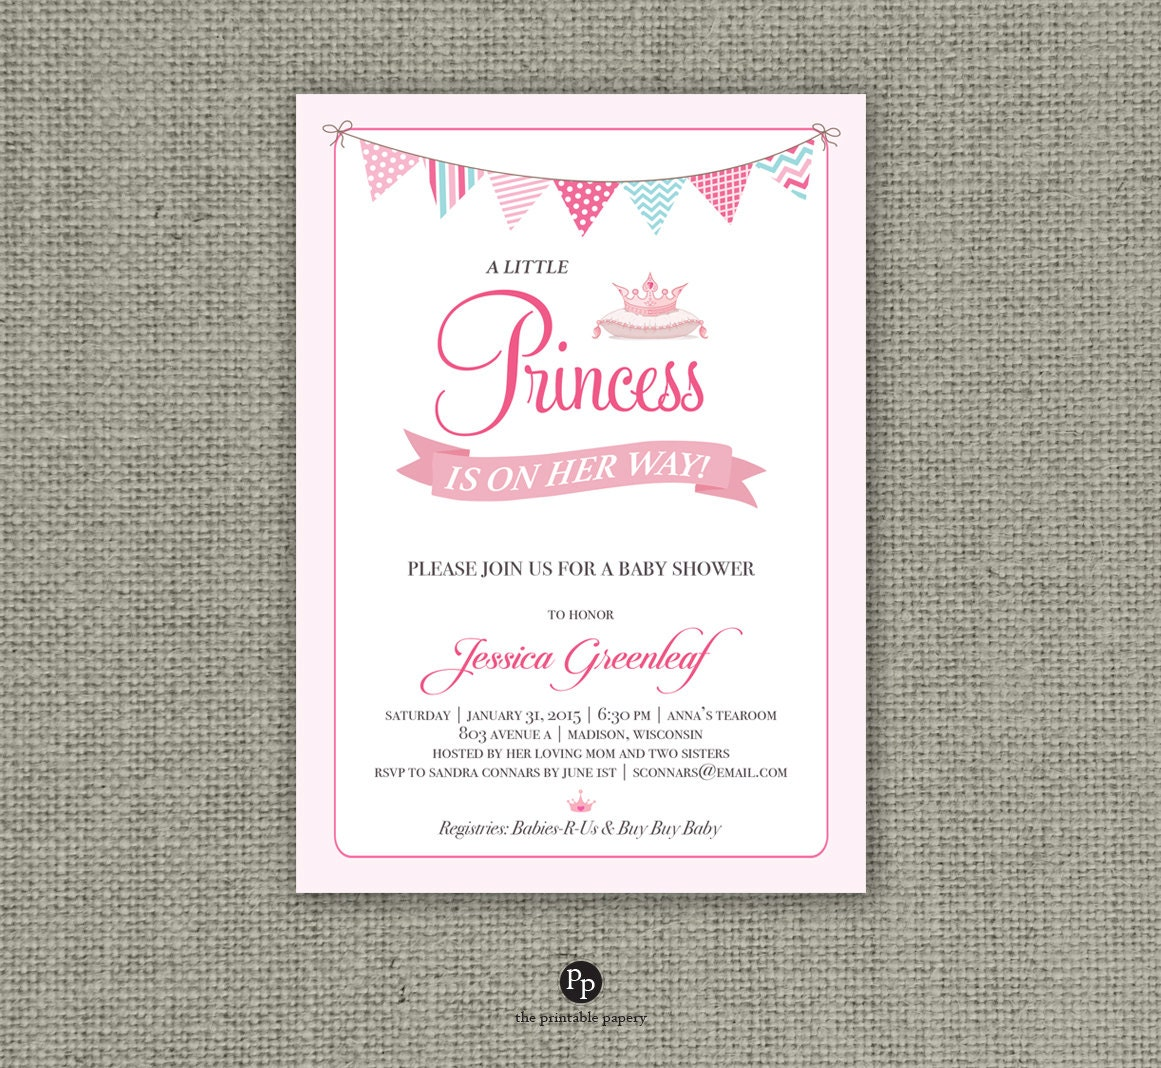 Printable Princess Baby Shower Invitation Card | A Little Princess ...